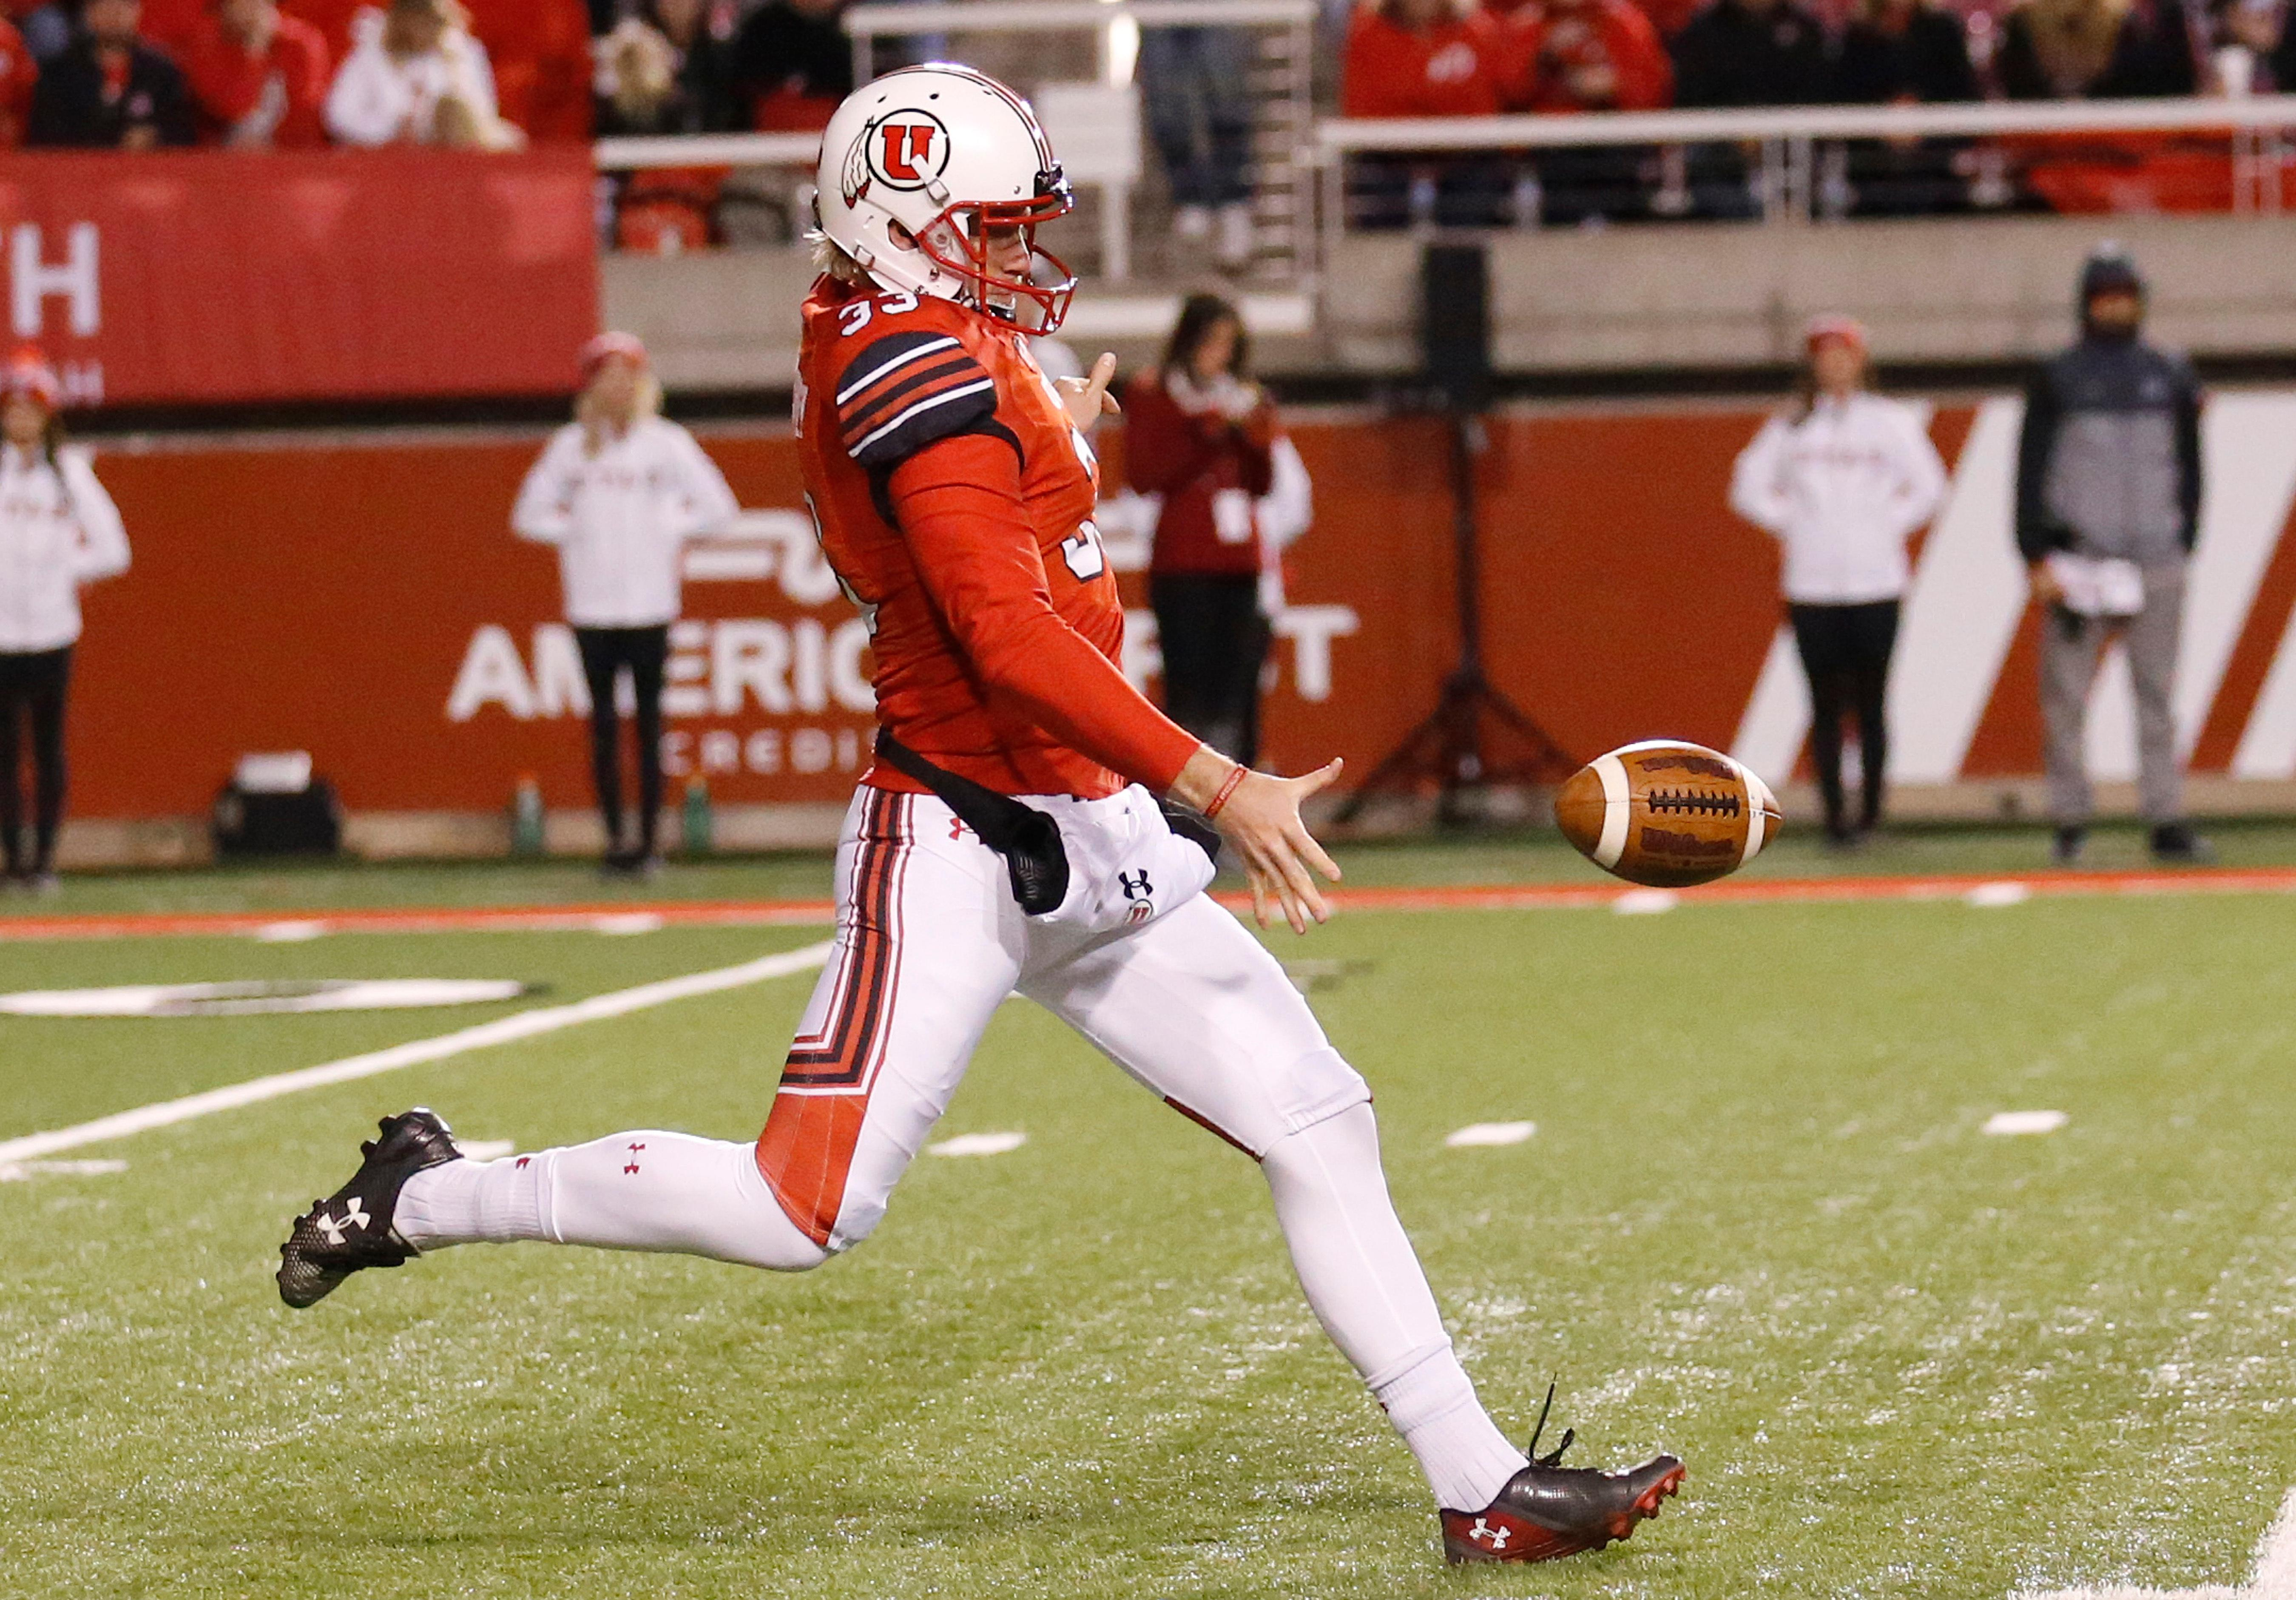 FILE - In this Nov. 11, 2017, photo, Utah's Mitch Wishnowsky punts in the second half during an NCAA college football game against Washington State, in Salt Lake City. Wishnowsky was selected to the AP All-Conference Pac-12 team announced Thursday, Dec. 7, 2017.  (AP Photo/Rick Bowmer, File)